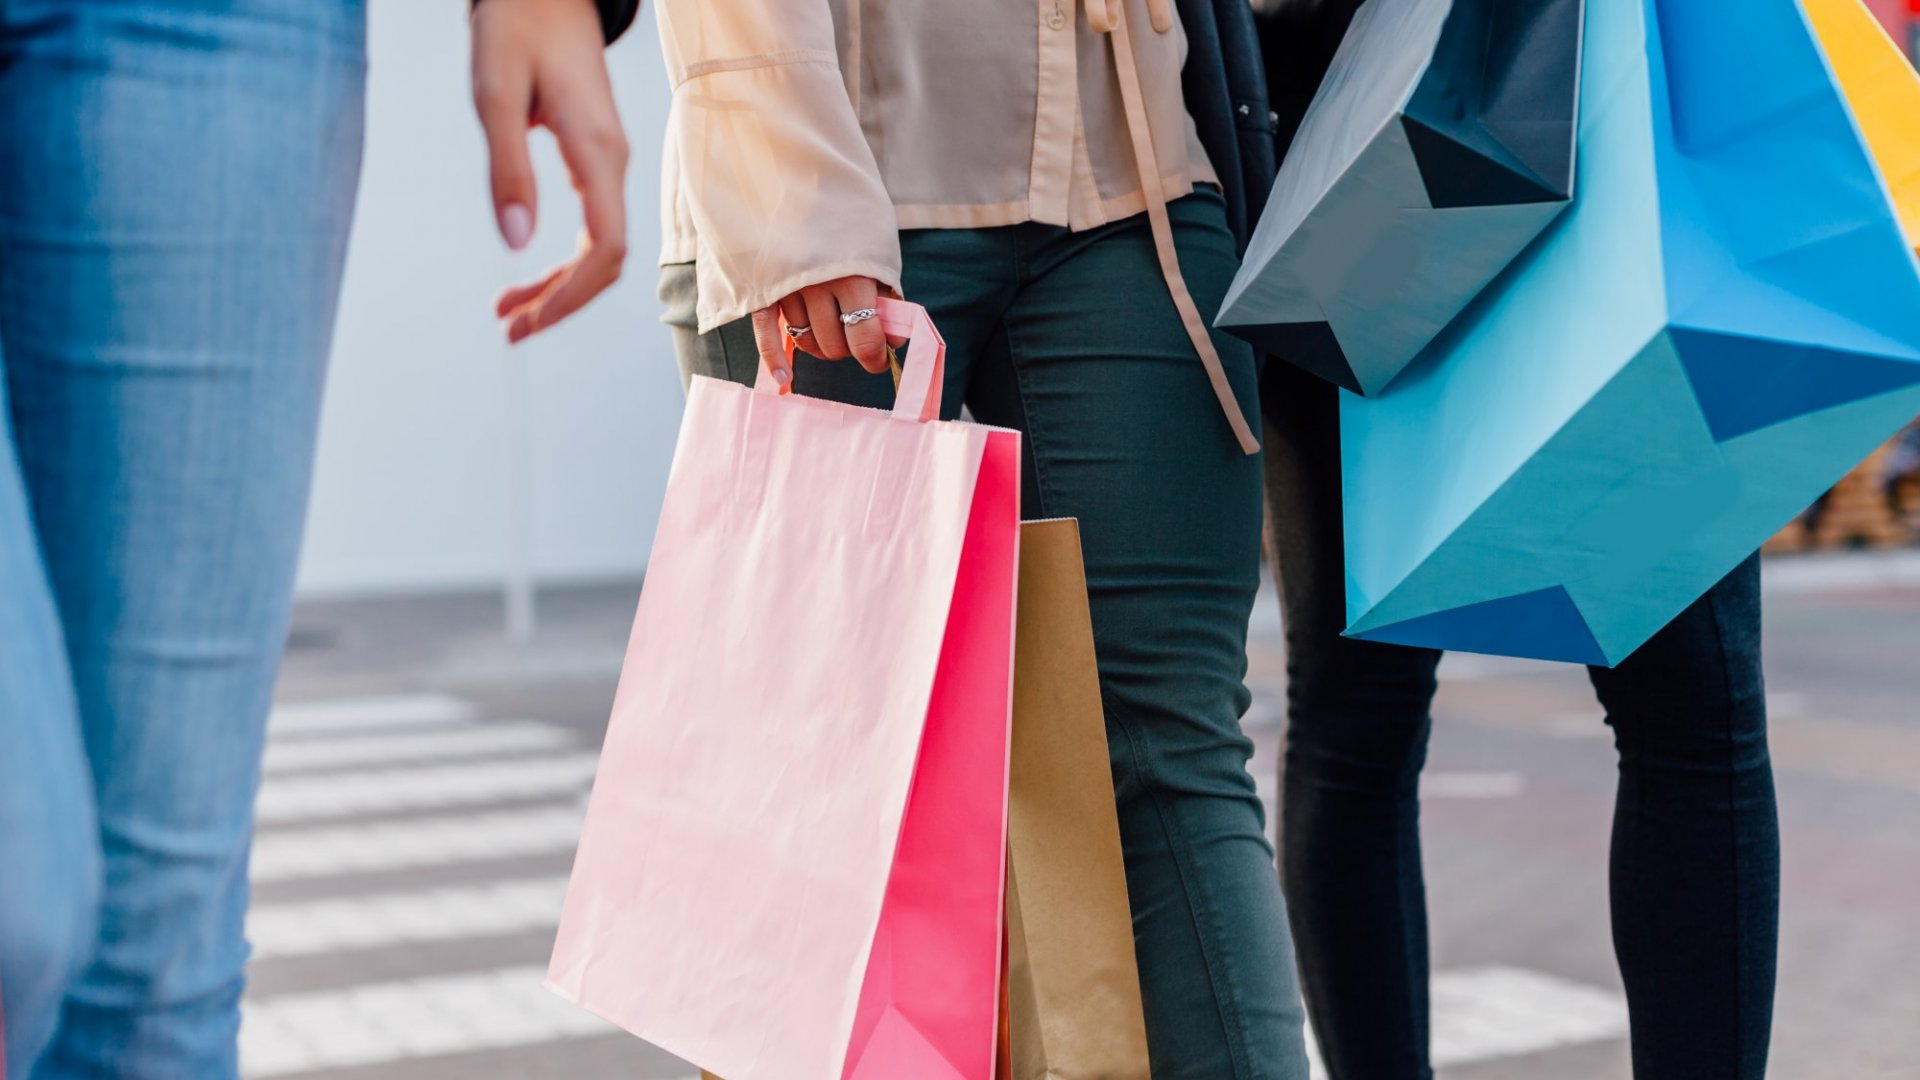 The Top 5 Takeaways From Black Friday 2016